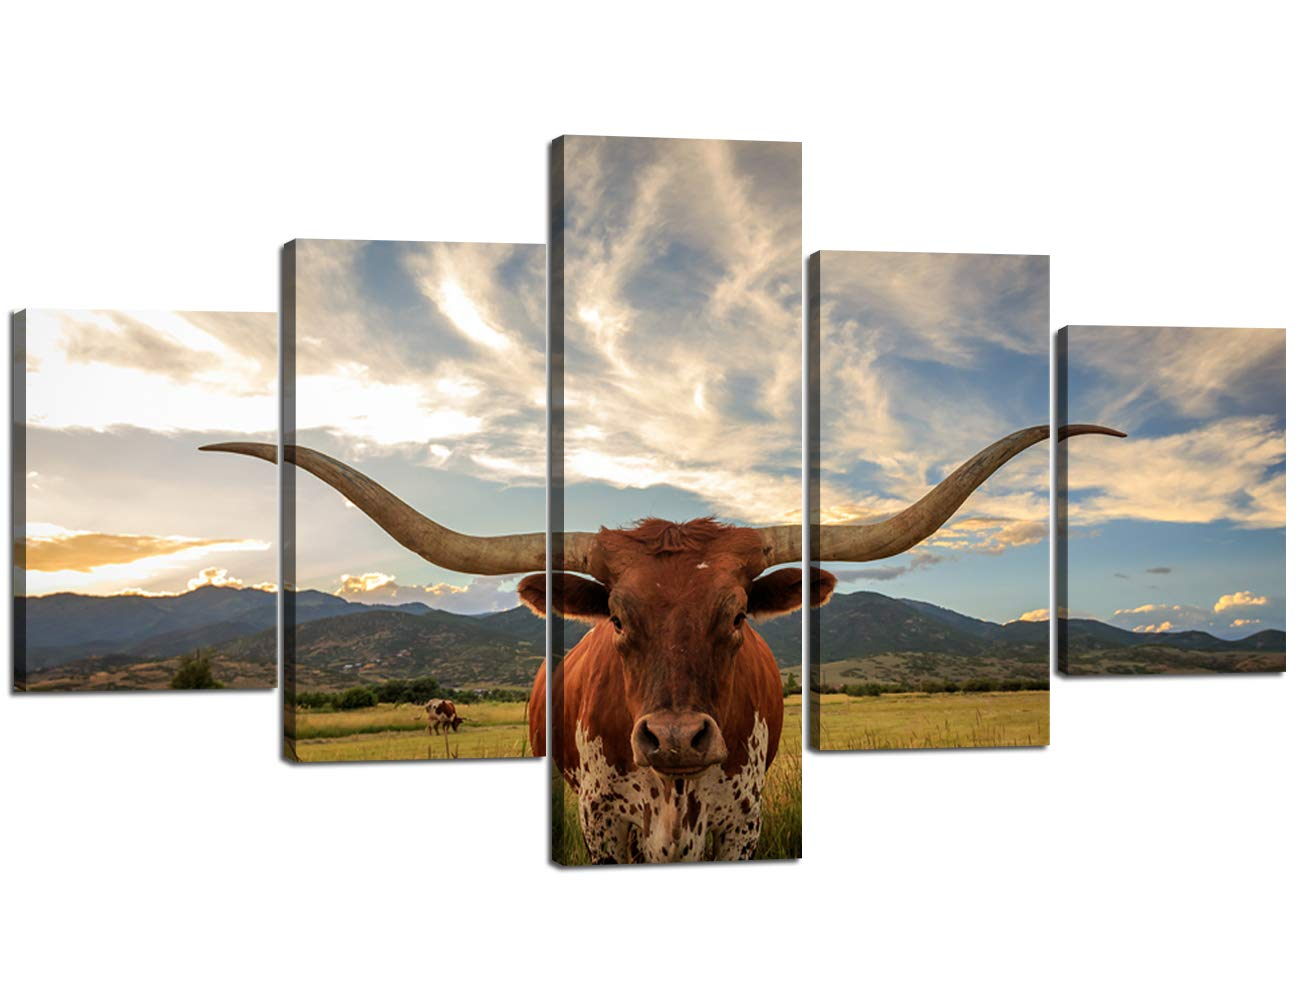 Yatsen Bridge Modern Canvas Wall Art Texas Longhorn Steer in Rural Utah Painting for Home Decor 5 Panels Animal Decorative Prints and Posters Easy to Hang, Waterproof - 70''W x 40''H